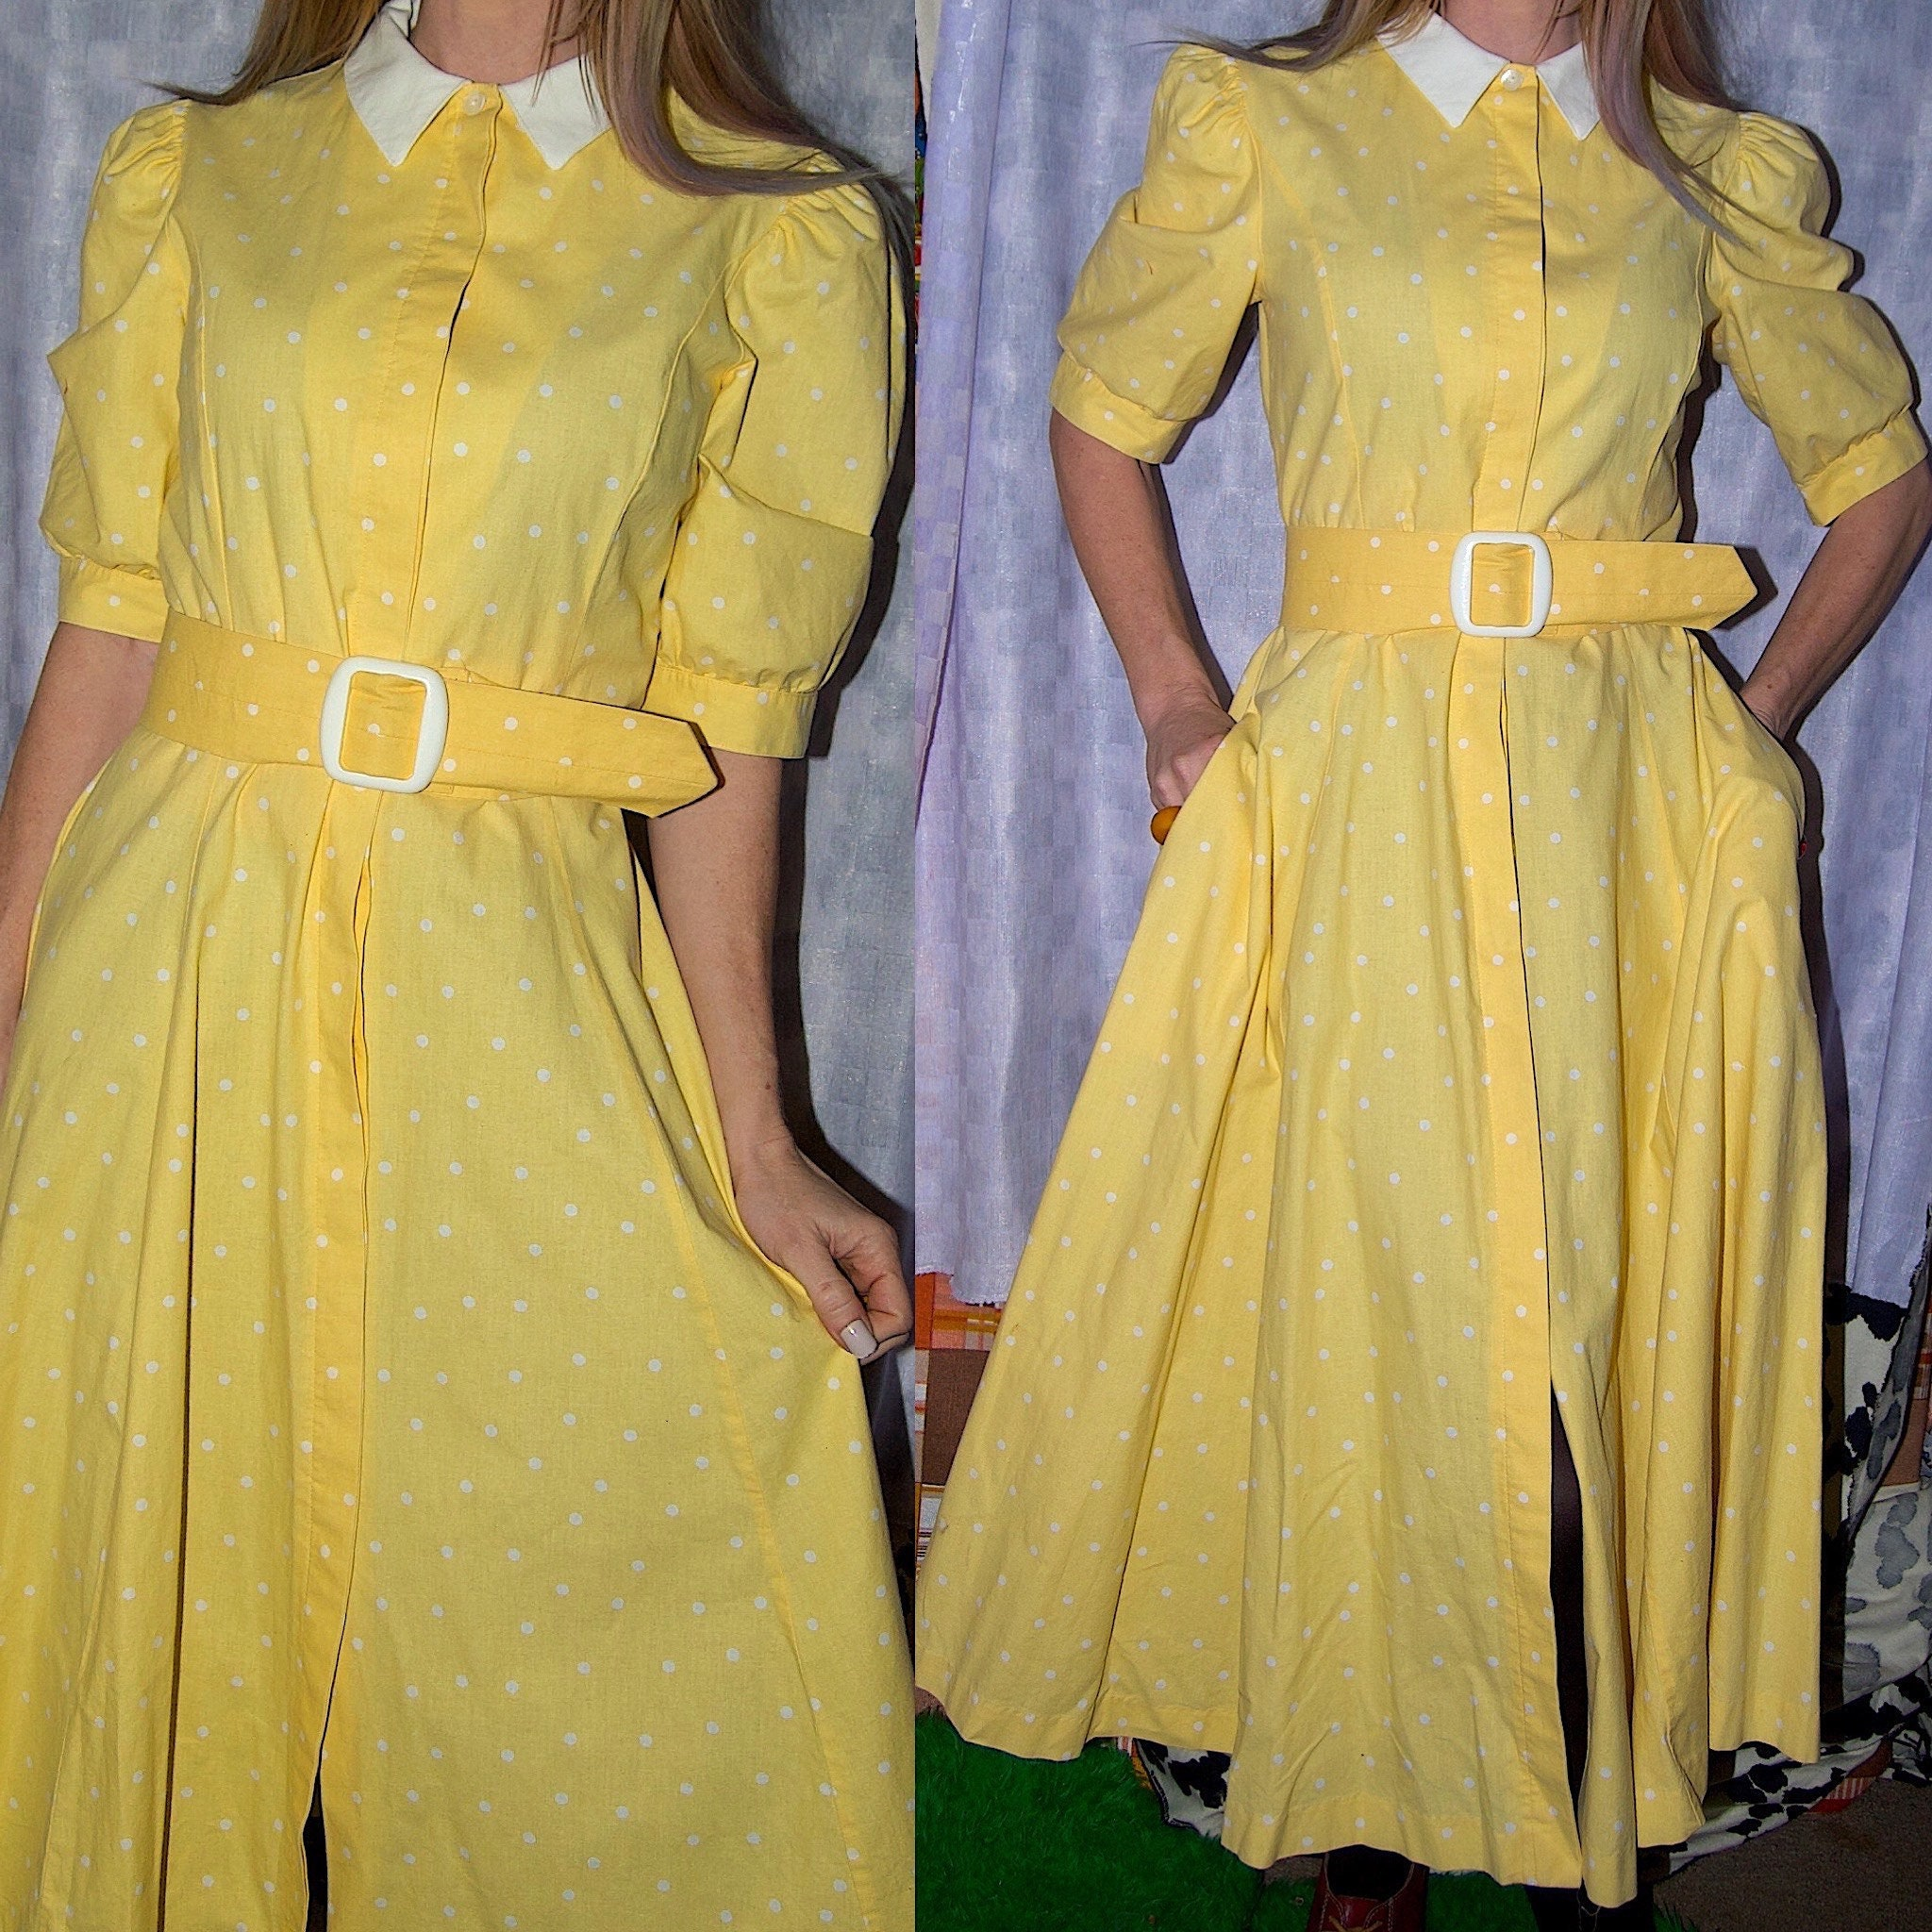 80s Dresses | Casual to Party Dresses Vintage 1980s Yellow Laura Ashley Polka Dot Belted Fit N Flare Day Dress $26.00 AT vintagedancer.com